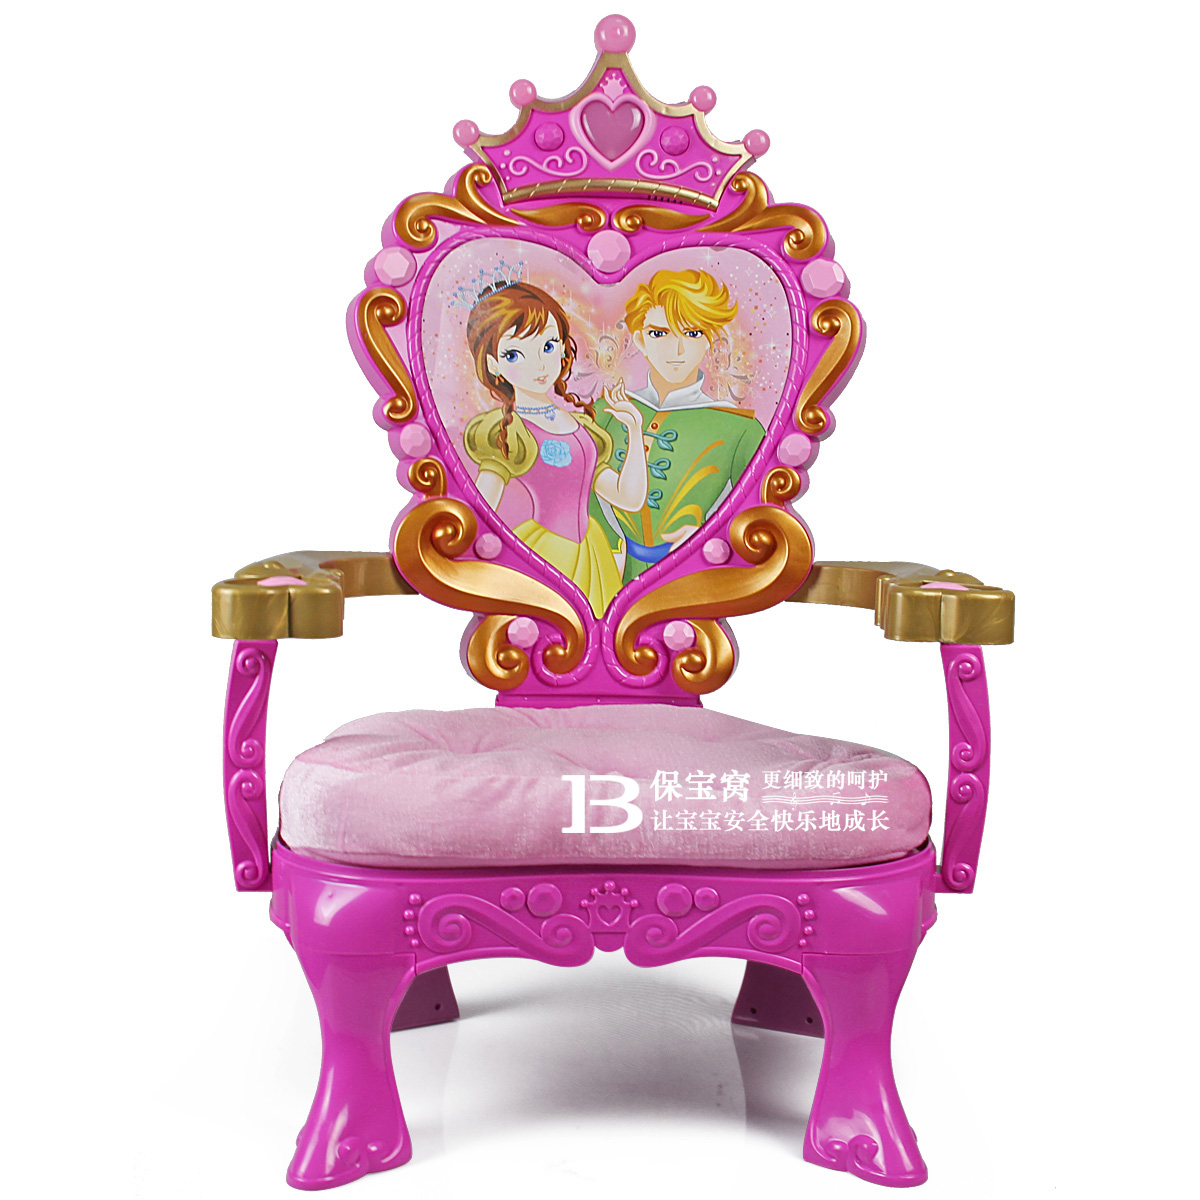 Princess throne chair - Child Chair Luxury Flannelet Princess Chair Toy Plastic Chair Plastic Baby Stool In Children Chairs From Furniture On Aliexpress Com Alibaba Group